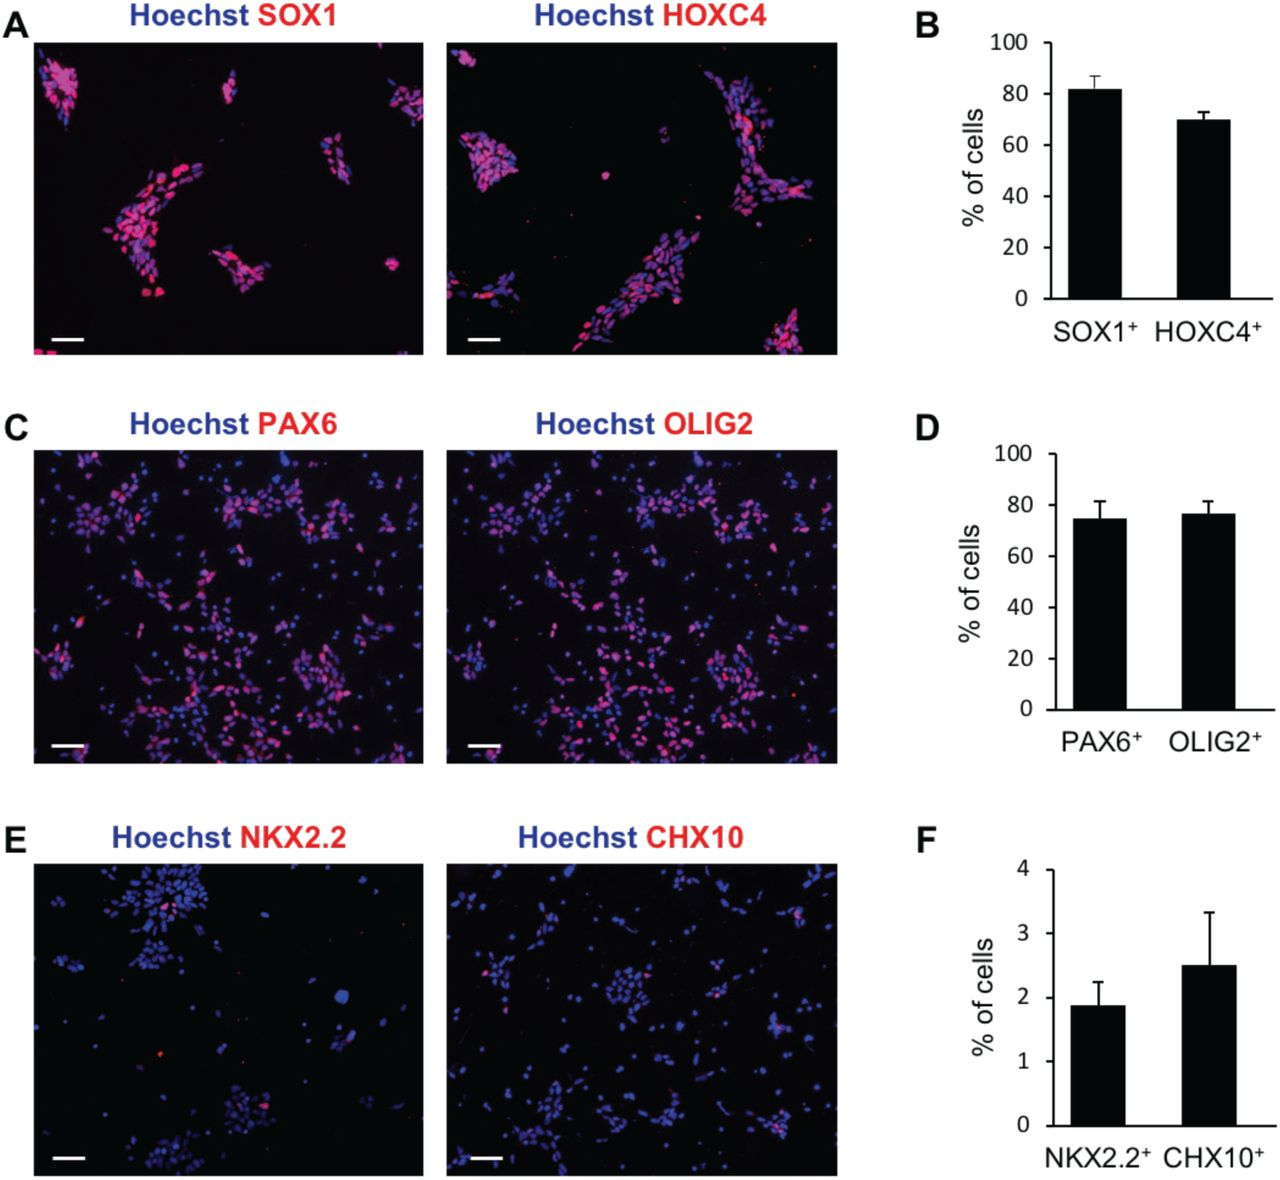 Generation of an enriched population of human iPSC-derived motor neuron progenitor cells. (A-B) Representative images (A) and quantification (B) of neural progenitor cells (NPCs) subjected to immunocytochemistry with either anti-SOX1 or anti-HOXC4 antibodies 6 days after the start of the induction protocol. (C-D) Representative images (C) and quantification (D) of MNPCs subjected to immunocytochemistry with either anti-OLIG2 or anti-PAX6 antibodies 12 days after the start of the induction protocol. (E-F) Representative images (E) and quantification (F) of V3 interneuron progenitors (INPs) subjected to immunocytochemistry with anti-NKX2.2 antibody or V2 INPs visualized with anti-CHX10 antibody, 12 days after the start of the induction protocol. For all graphs, n = 3 cultures (with > 500 cells in random fields for each culture). Scale bars, 50 μm.